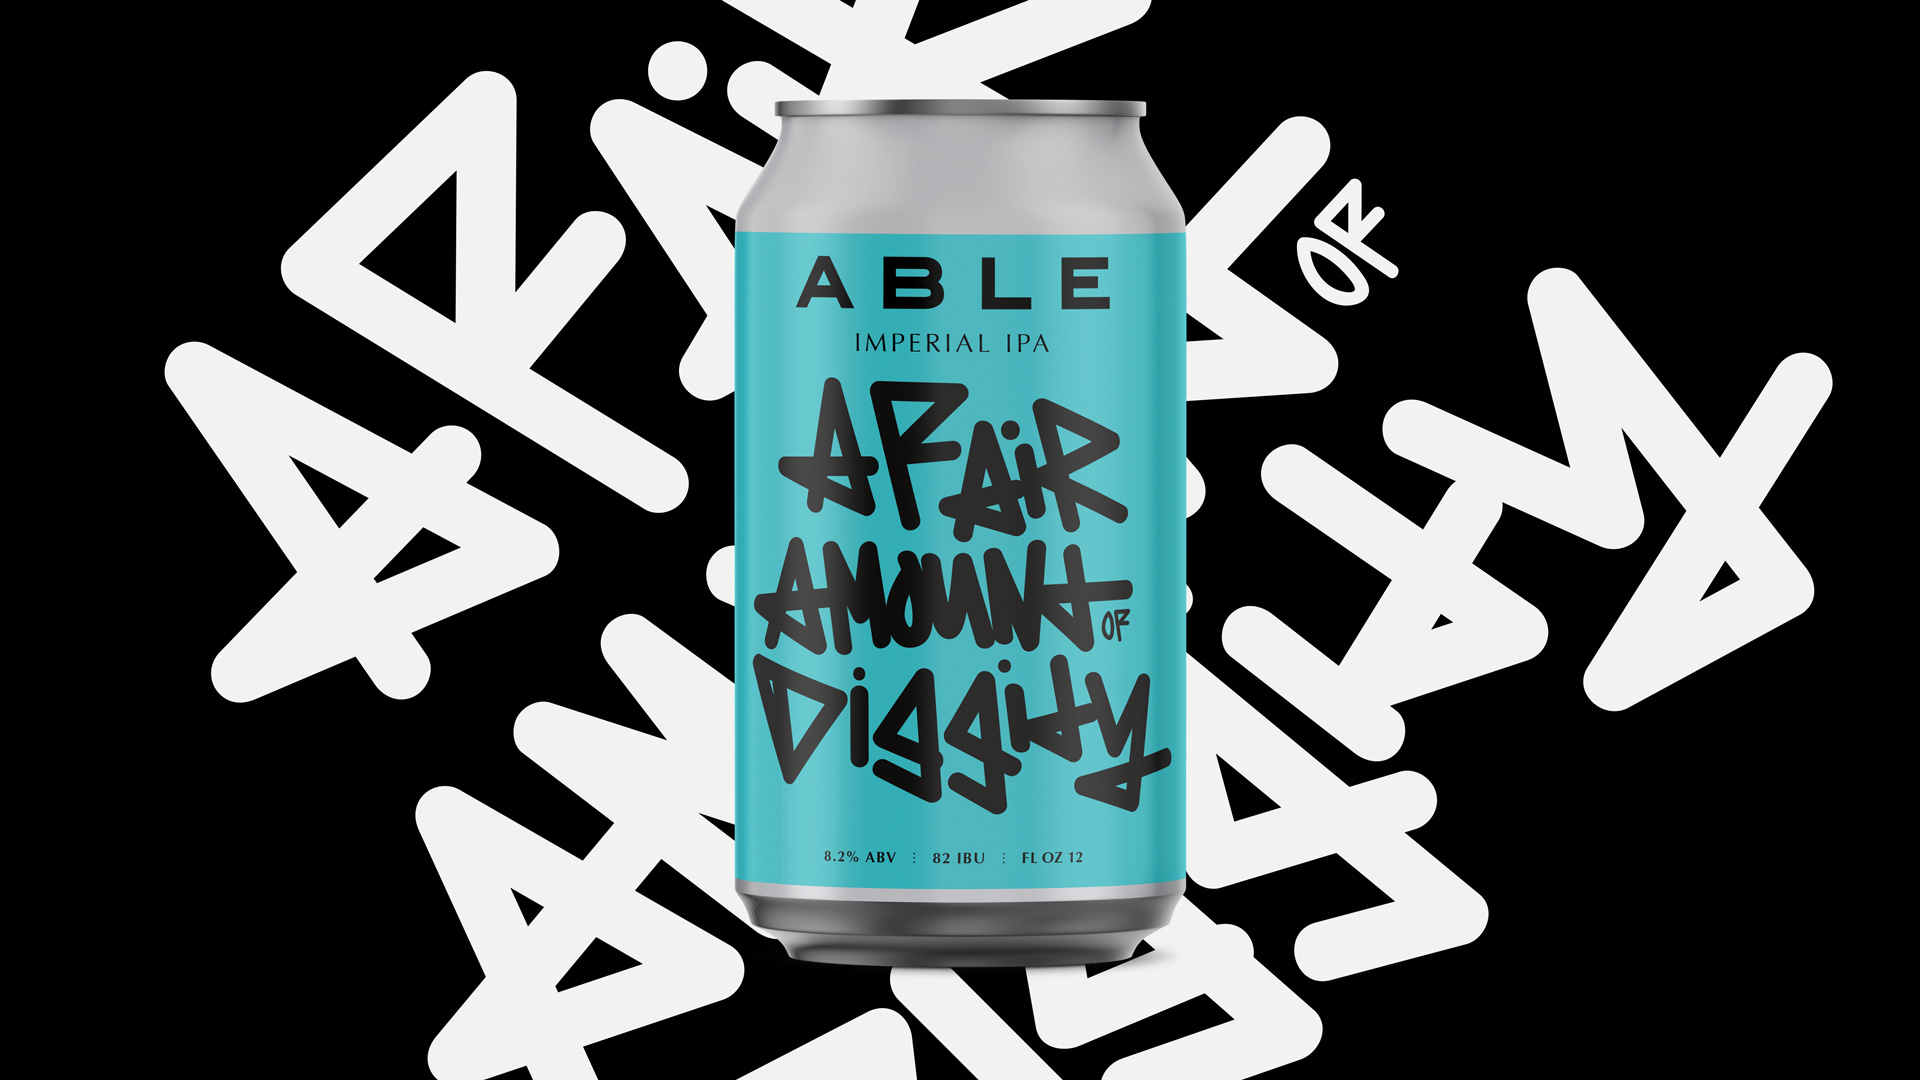 Able beer can design by Tony Buckland.